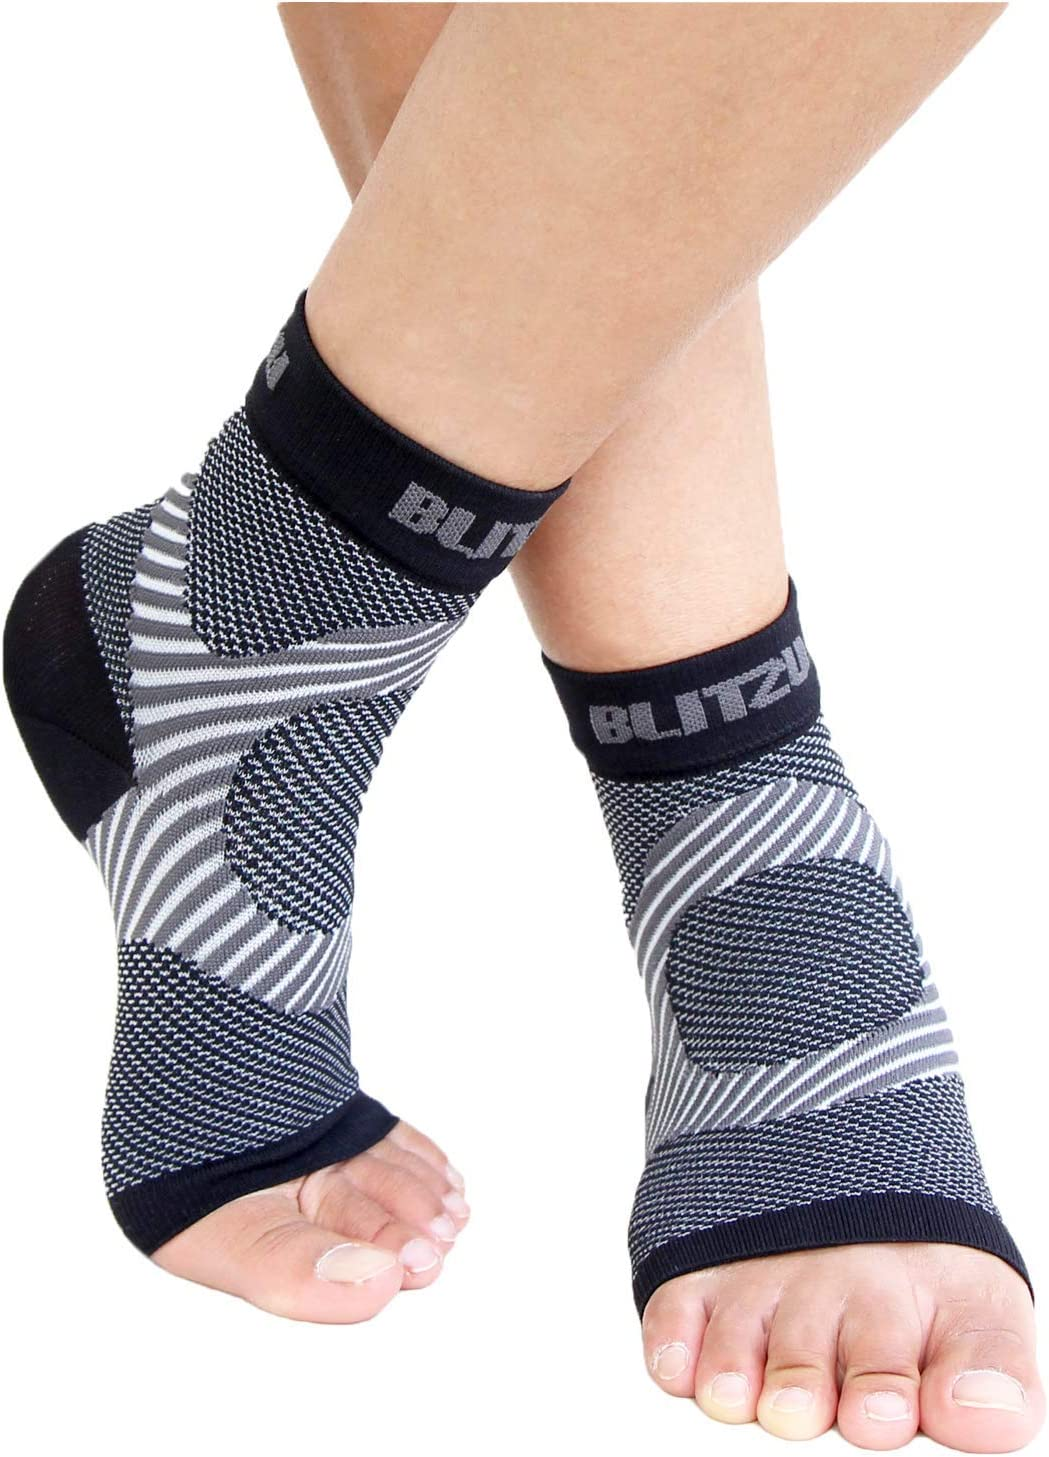 BLITZU Plantar Fasciitis Compression Socks For Women & Men - Best Ankle and Nano Sleeve For Everyday Use - Provides Foot & Arch Support. Heel Pain, and Achilles Tendonitis Relief. (Large/X-Large, Black): Health & Personal Care